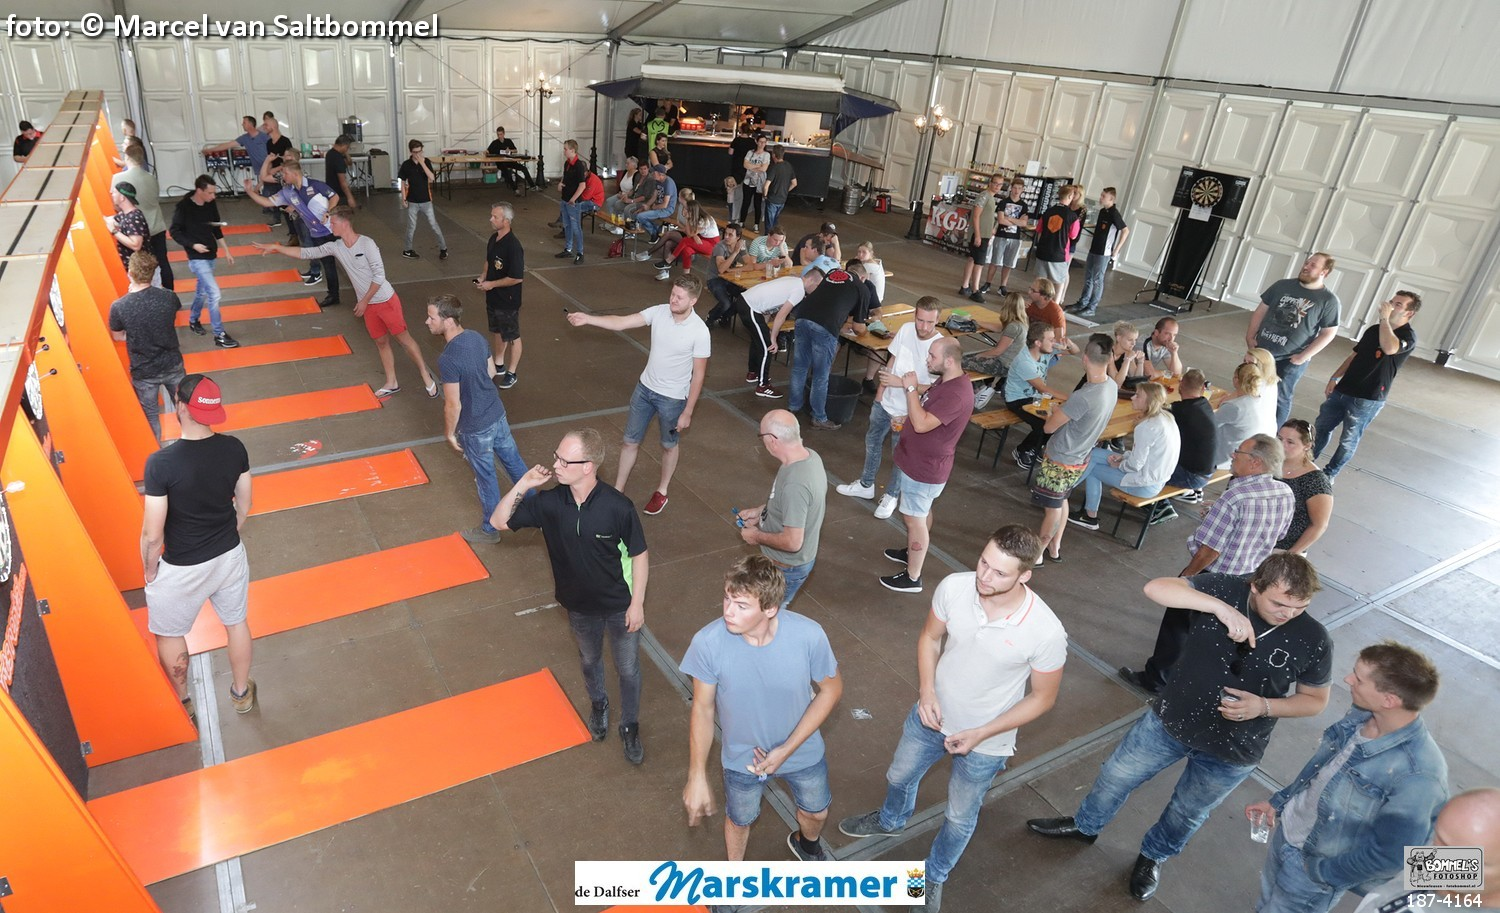 2 september 2018: Darttoernooi Oranjefeest